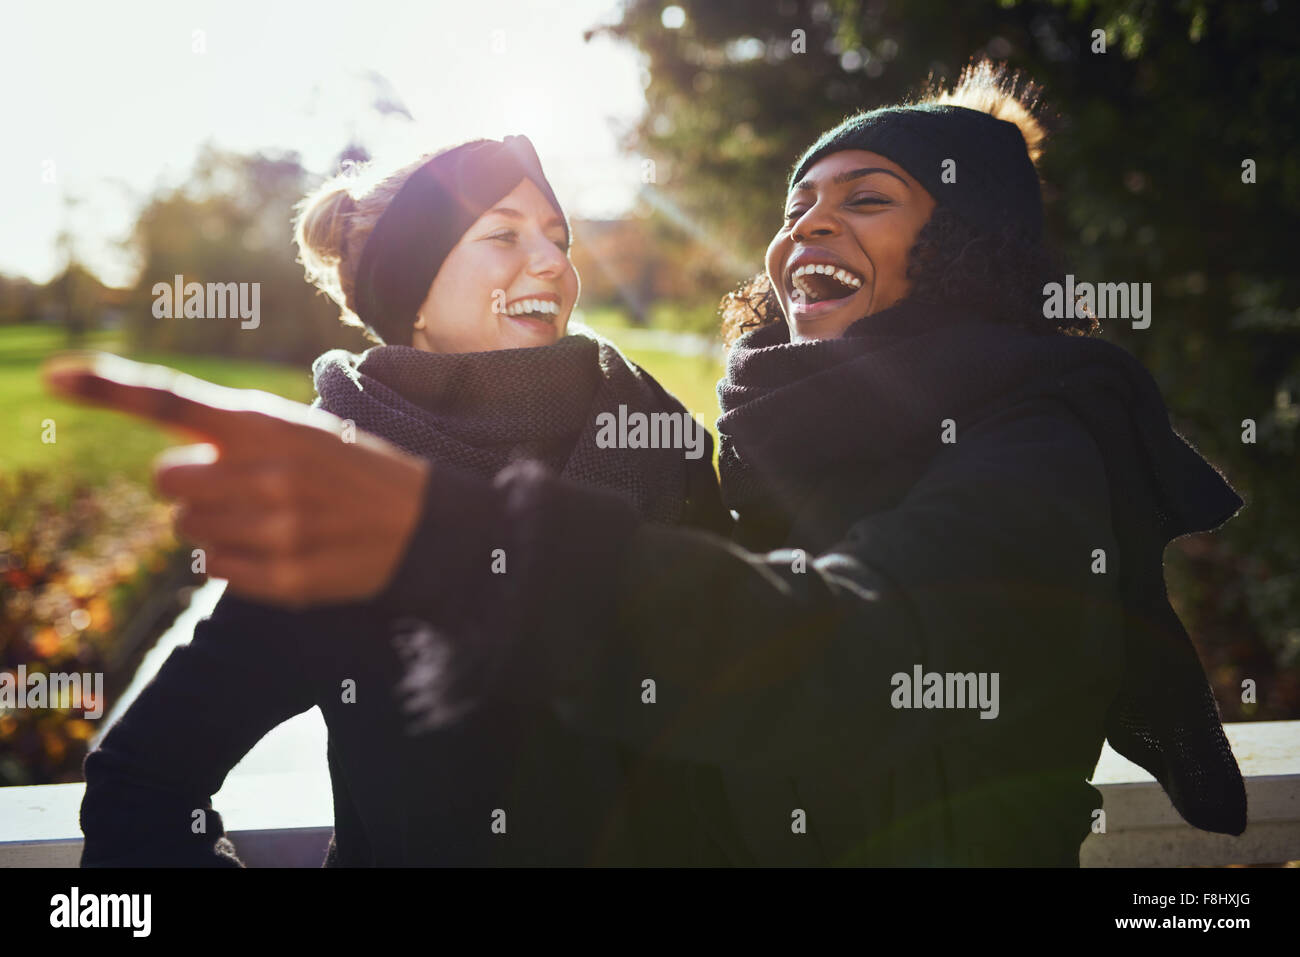 Two women laughing at something while standing in park - Stock Image